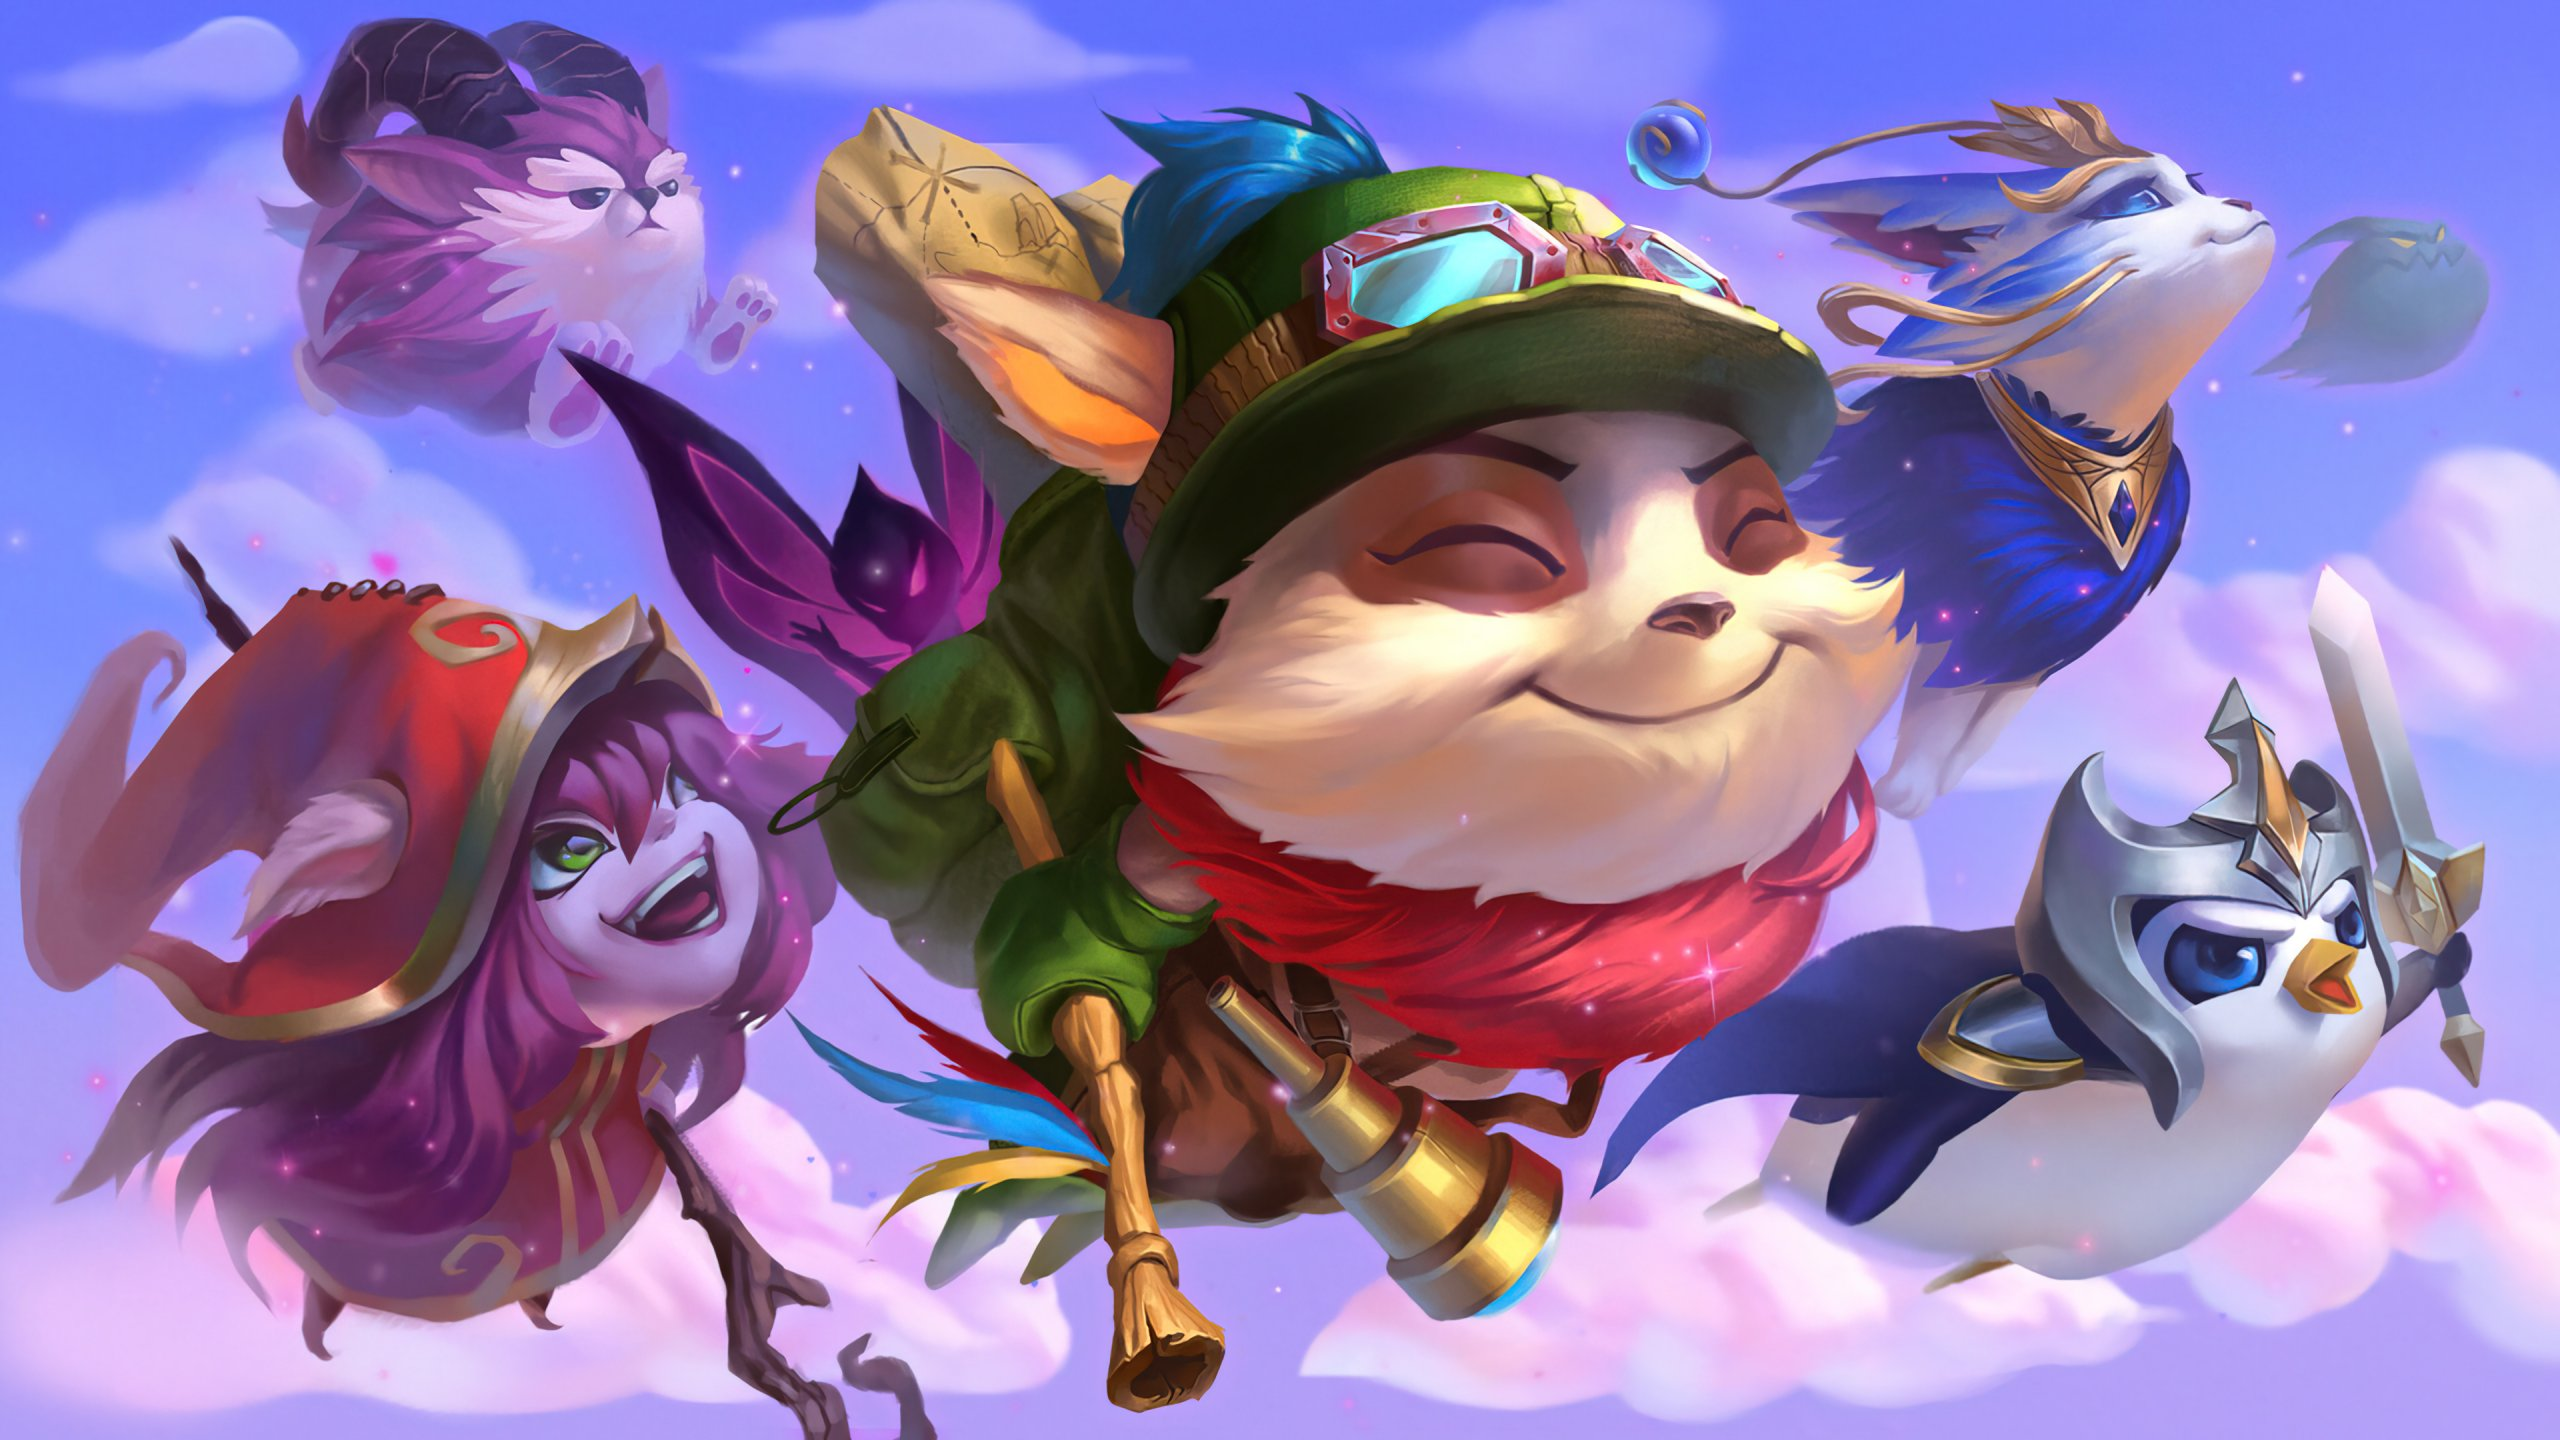 Teemo and Lulu from League of Legends Wallpaper 4k Ultra HD ID:7303